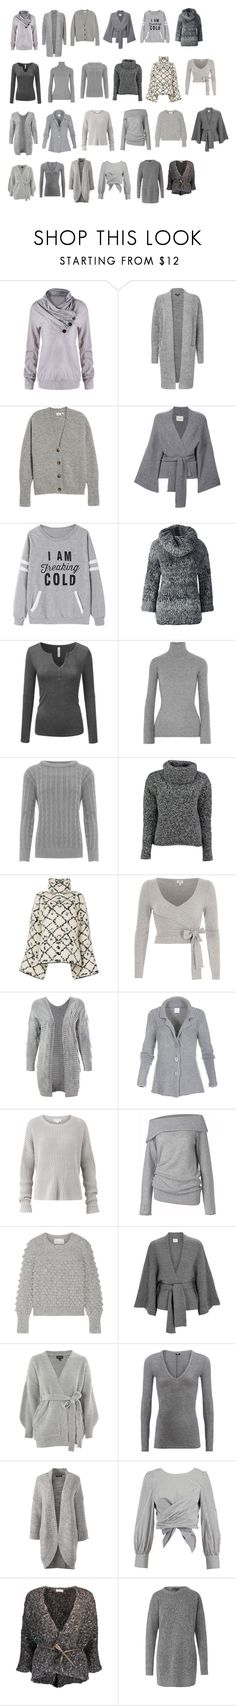 """""""casualclothing 1 gray"""" by imagekollection on Polyvore featuring AG Adriano Goldschmied, Le Kasha, Lands' End, Autumn Cashmere, WearAll, Lowie, Ports 1961, River Island, Sans Souci and Amanda Wakeley"""